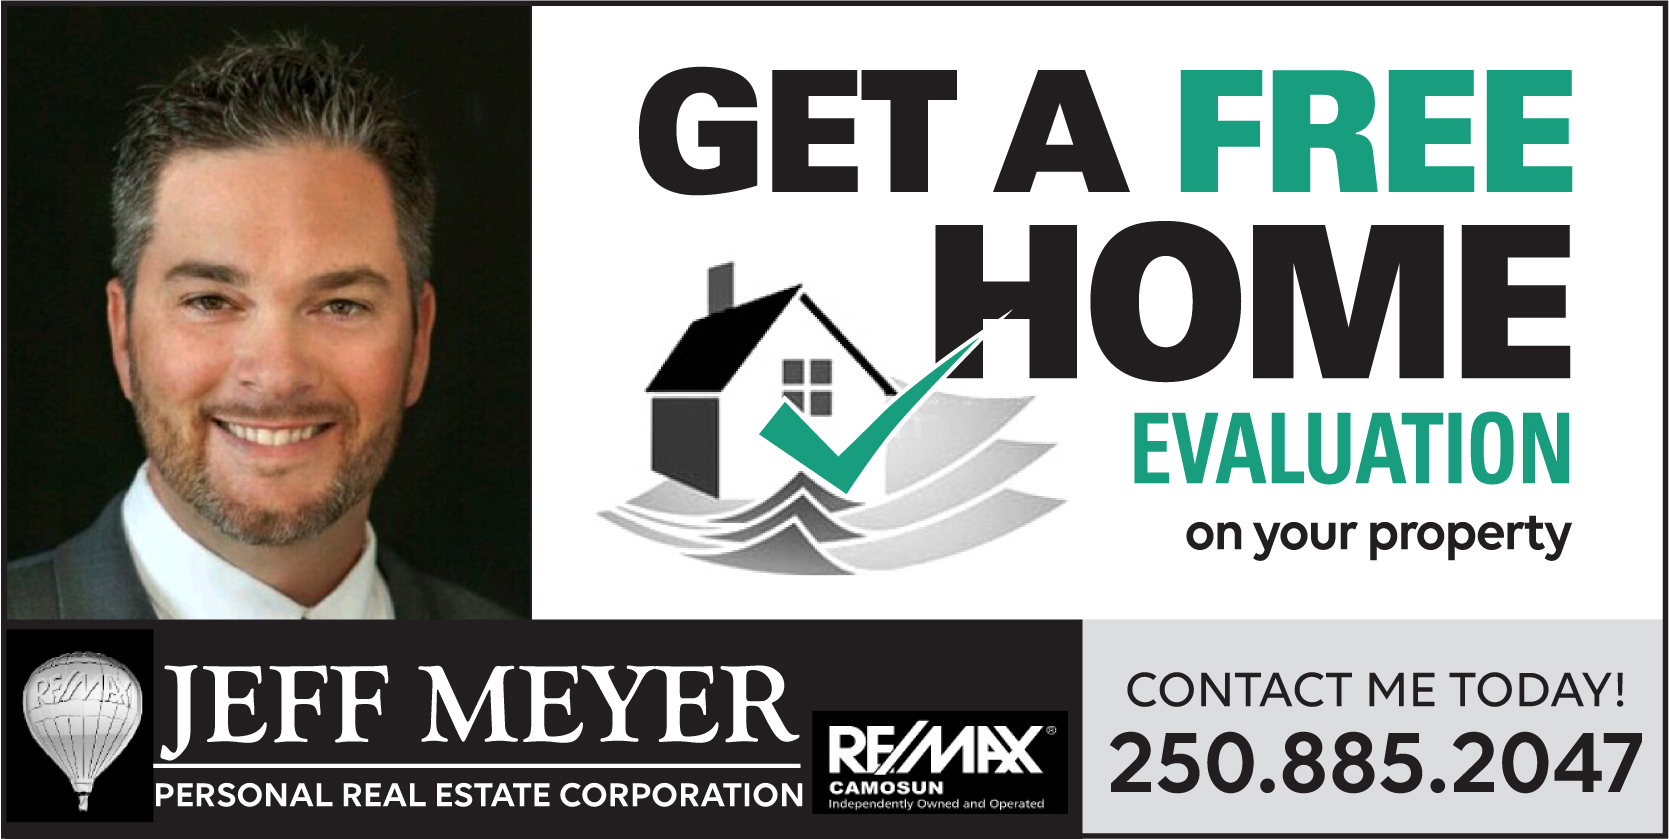 Jeff Meyer REMAX Real Estate